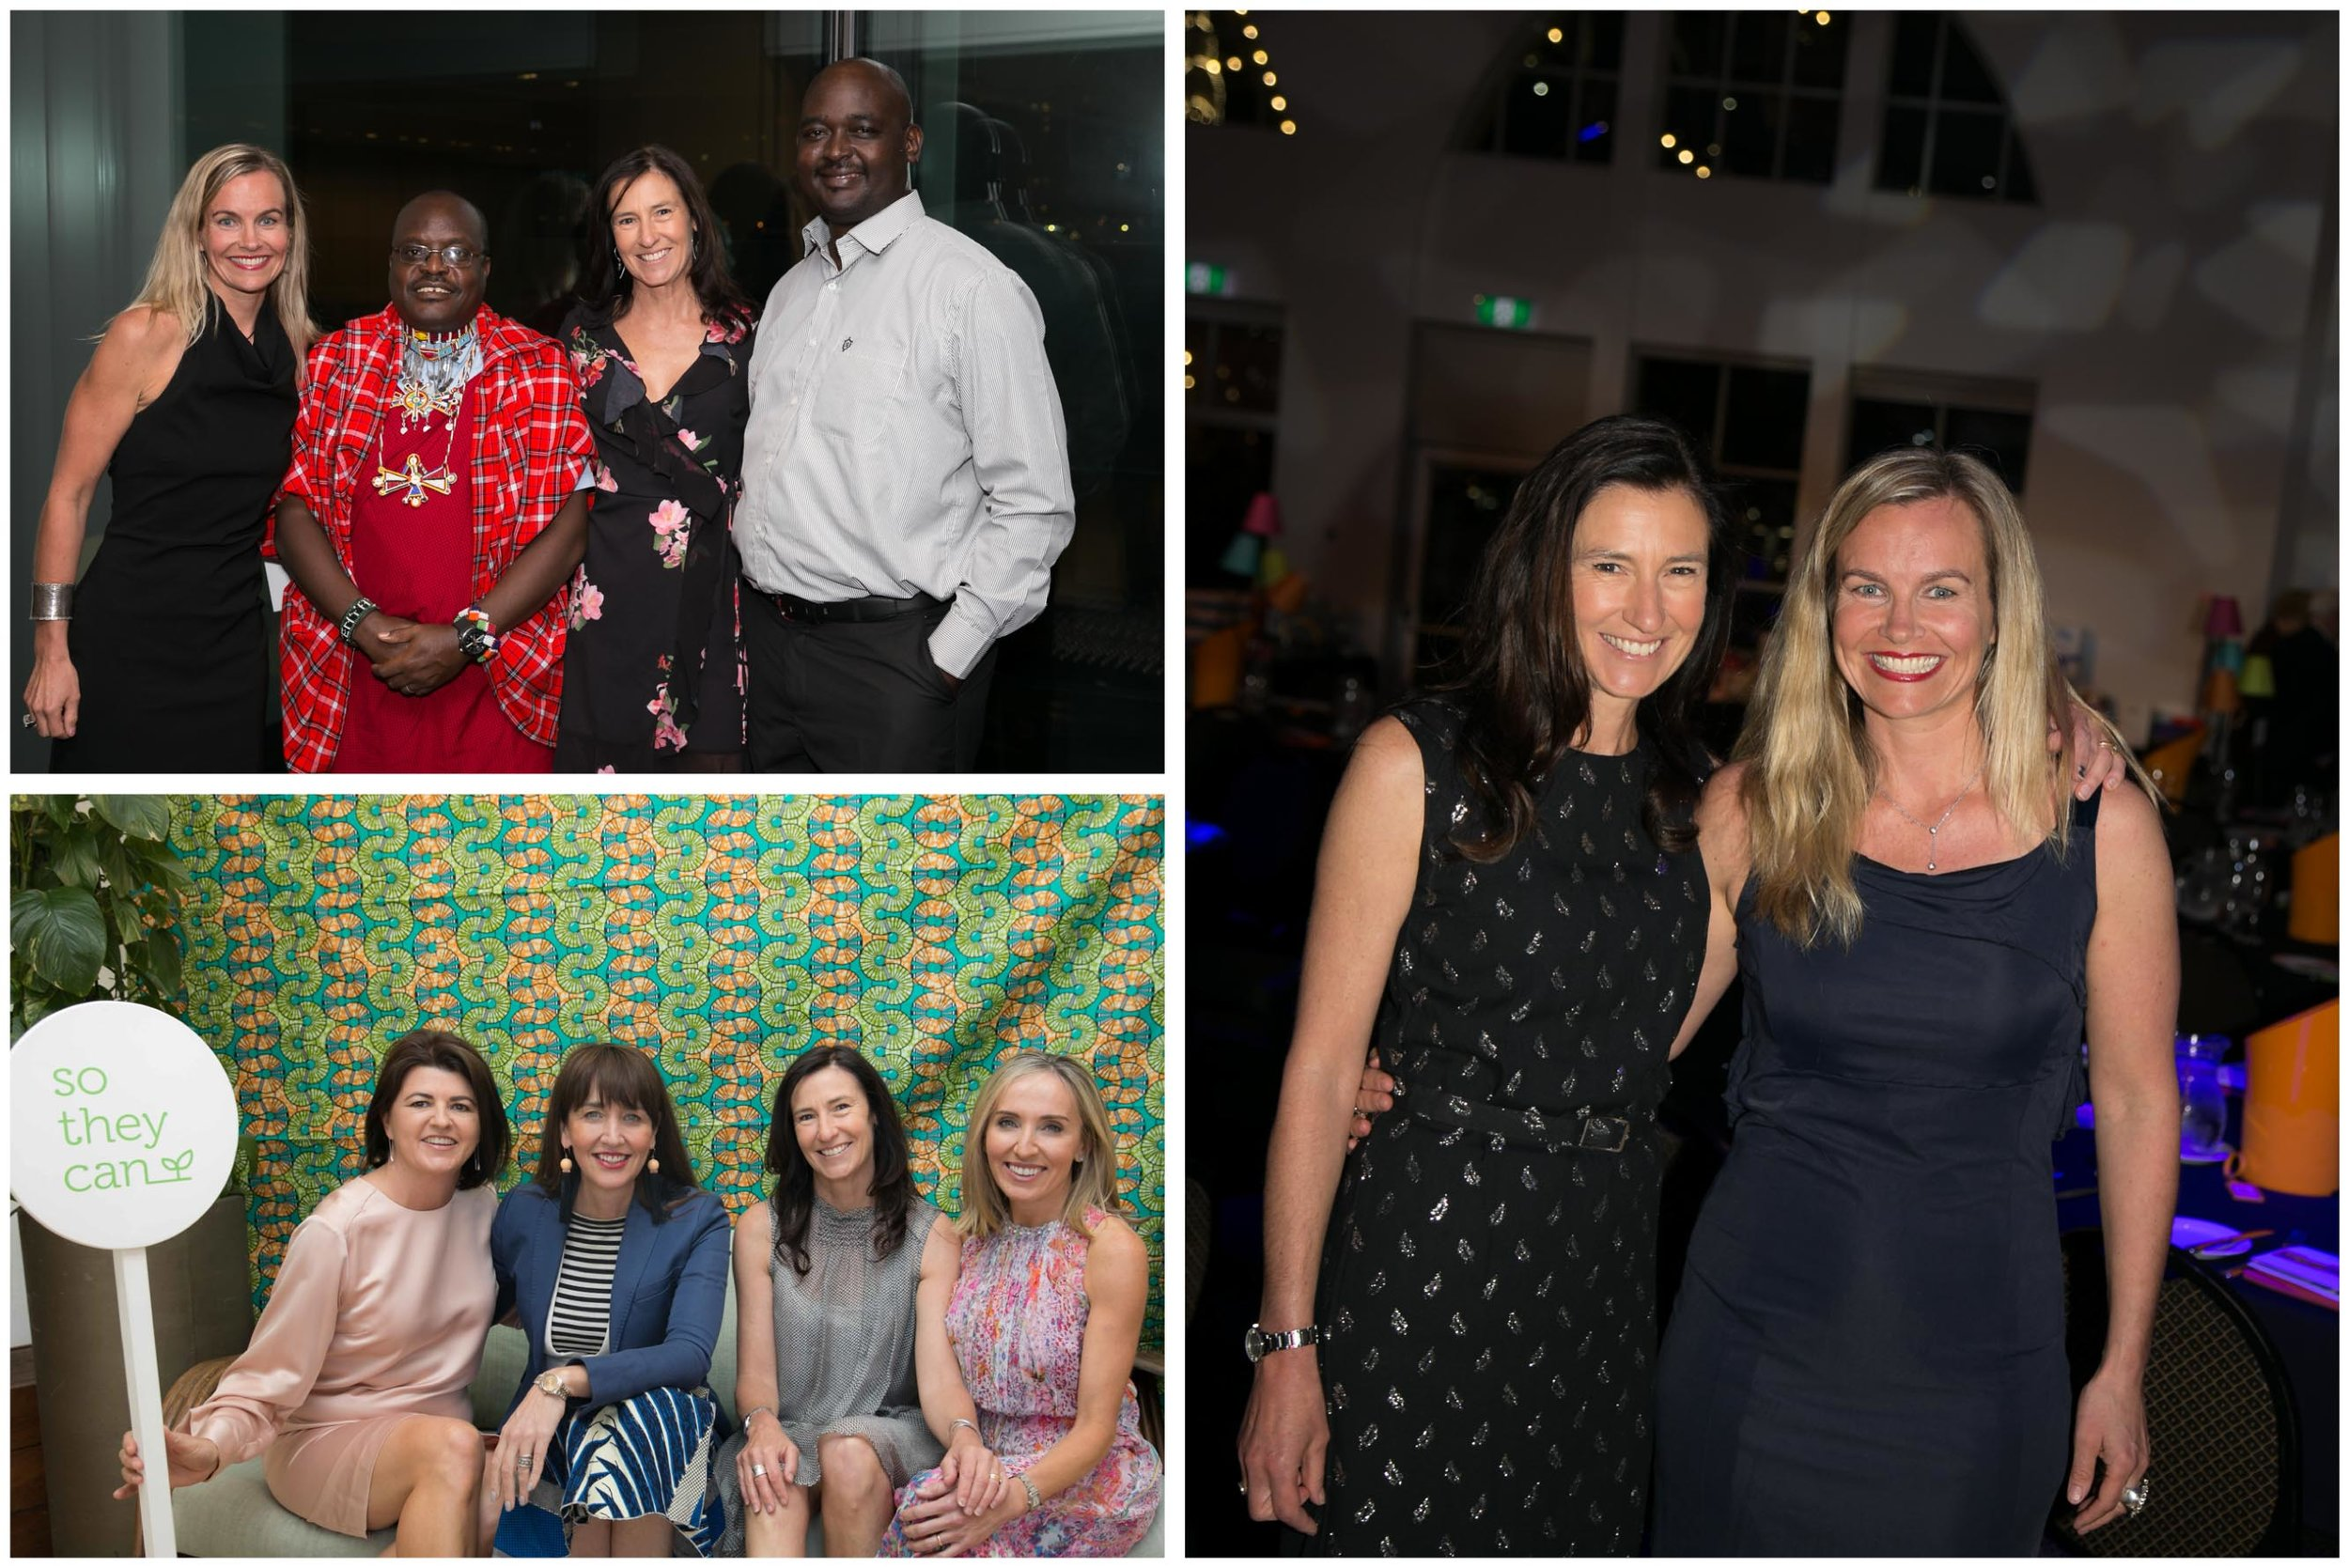 Here's Keri at various fundraising events throughout 2017 and 2018, with co-founder Cass, James & Boni (members of the team from Kenya) as well as Terri Anderson, sponsorship manager and STC ambassador Megan Morton with supporter, Nina Wines.